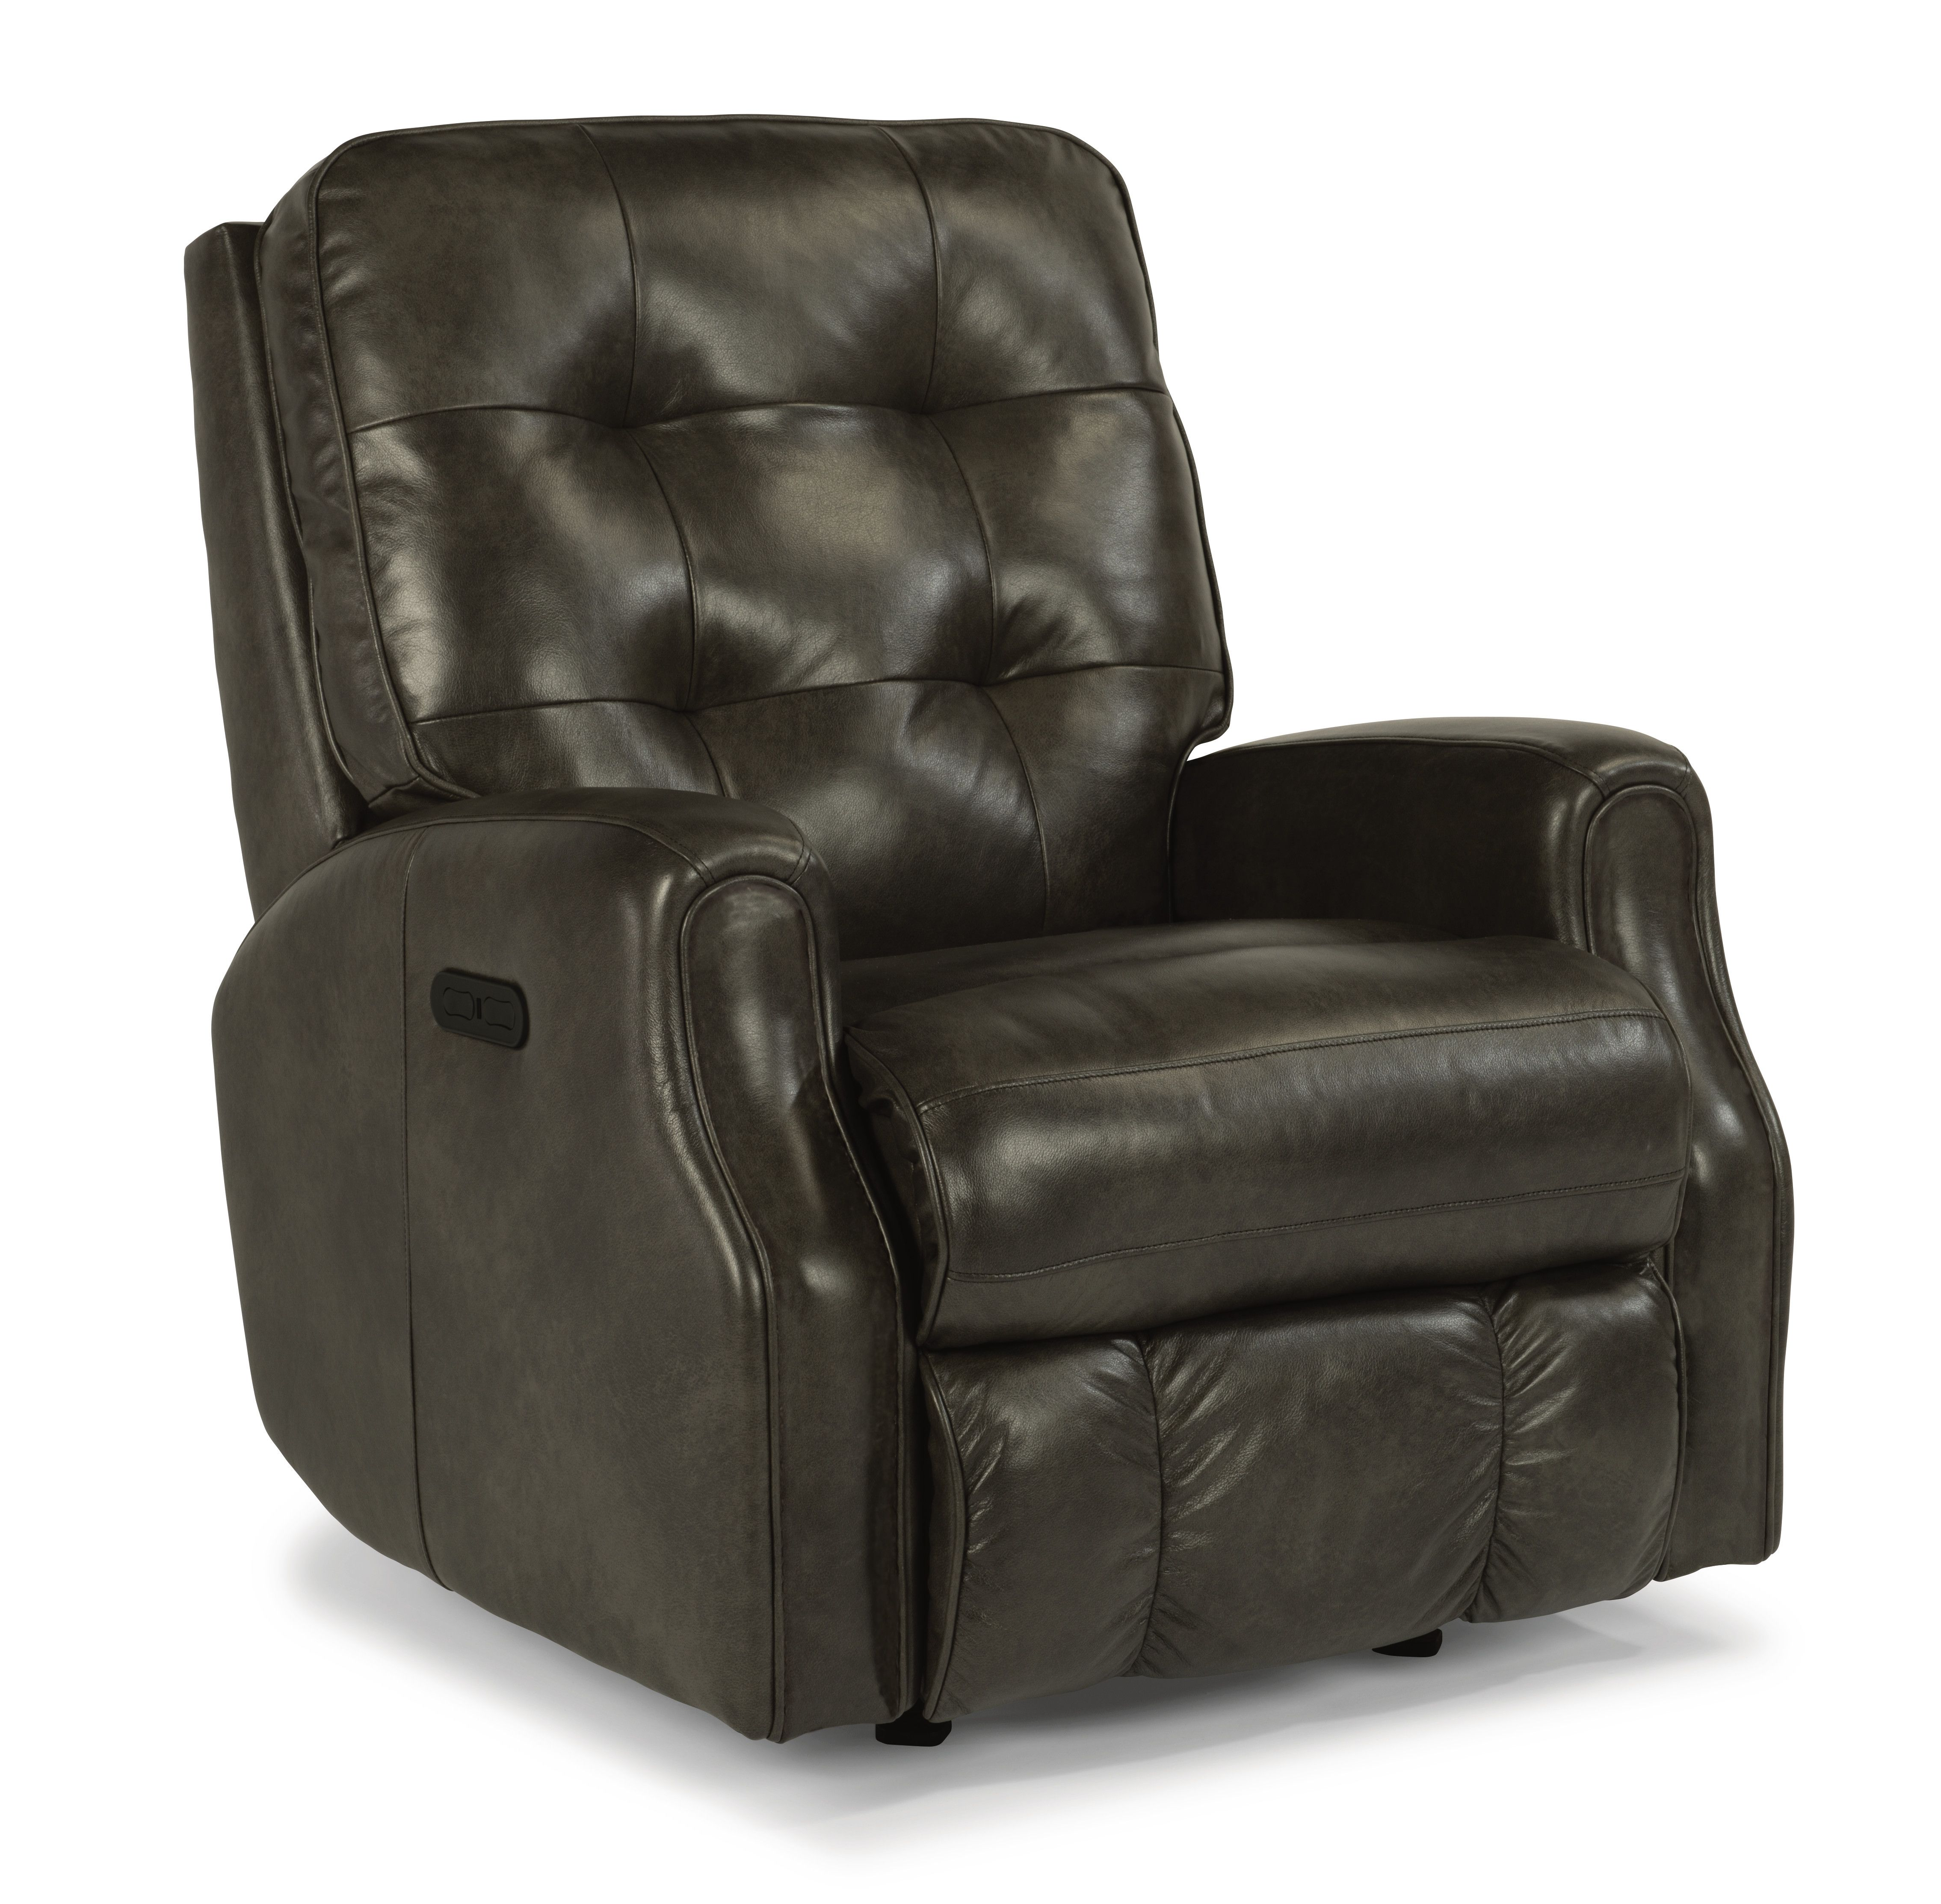 A Power Rocking Reclining Mechanism Lets You Rock And Recline And